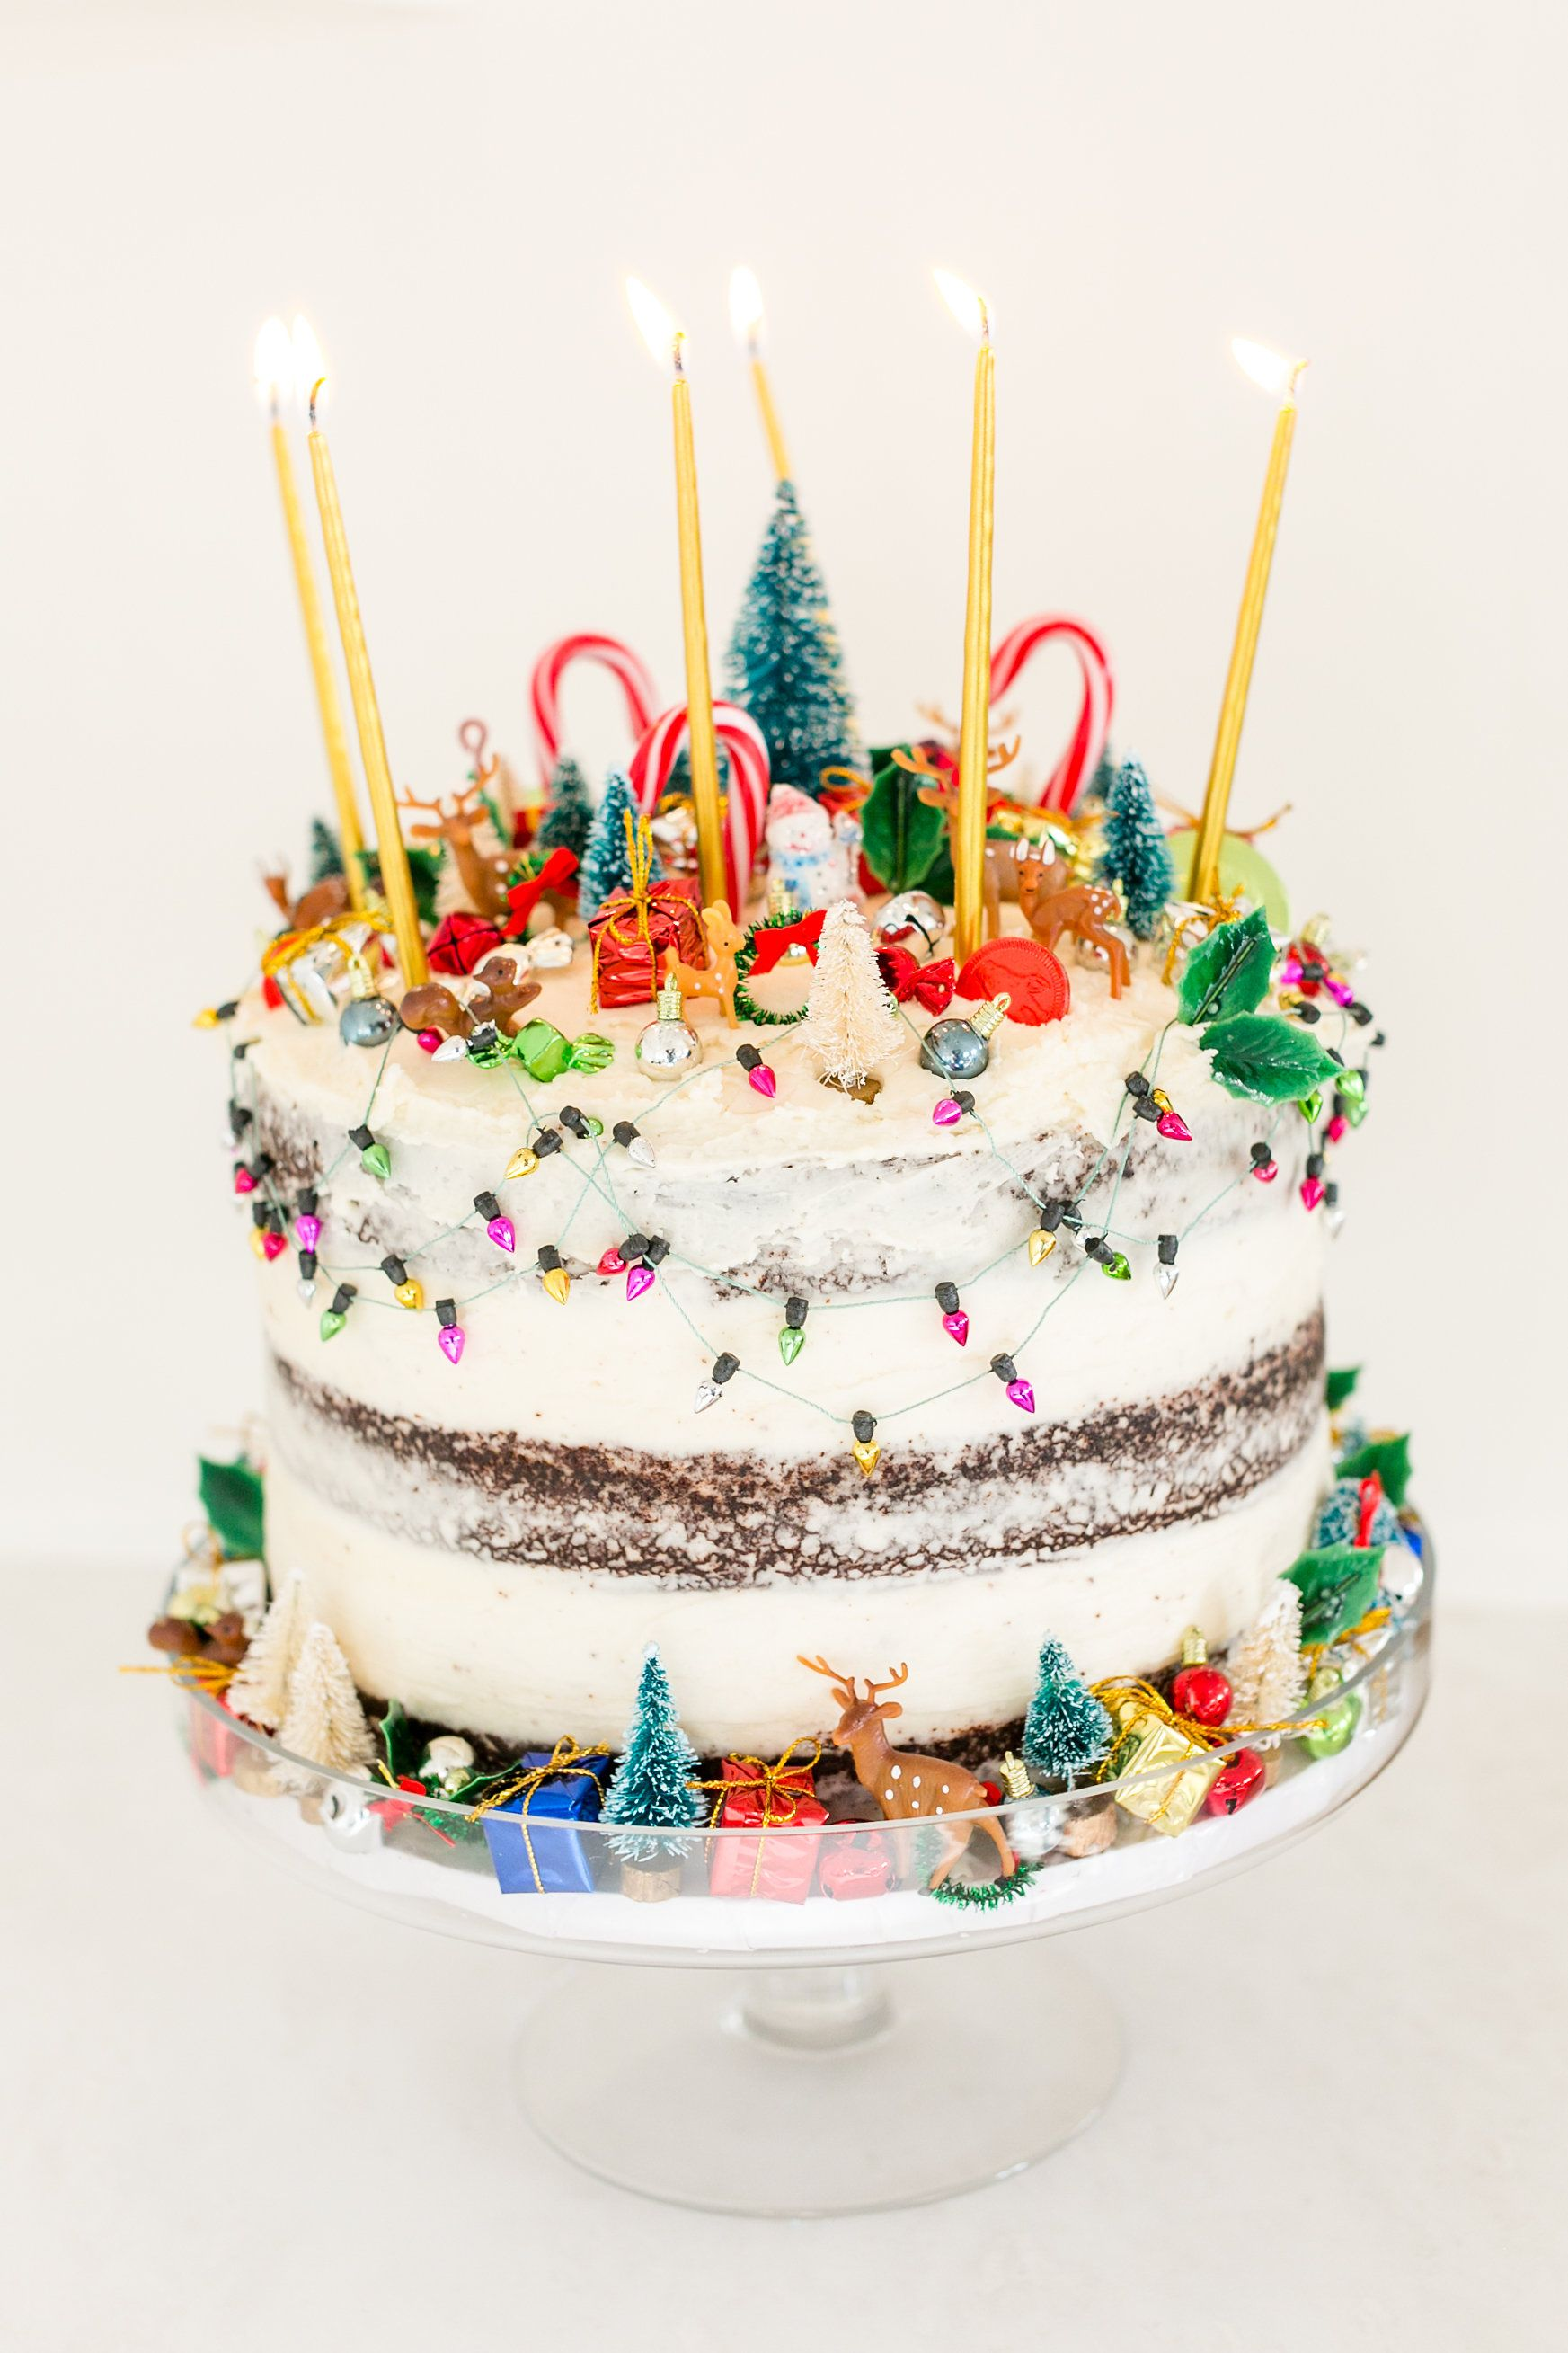 Edible Obsession Holiday Cake Decorating Ideas